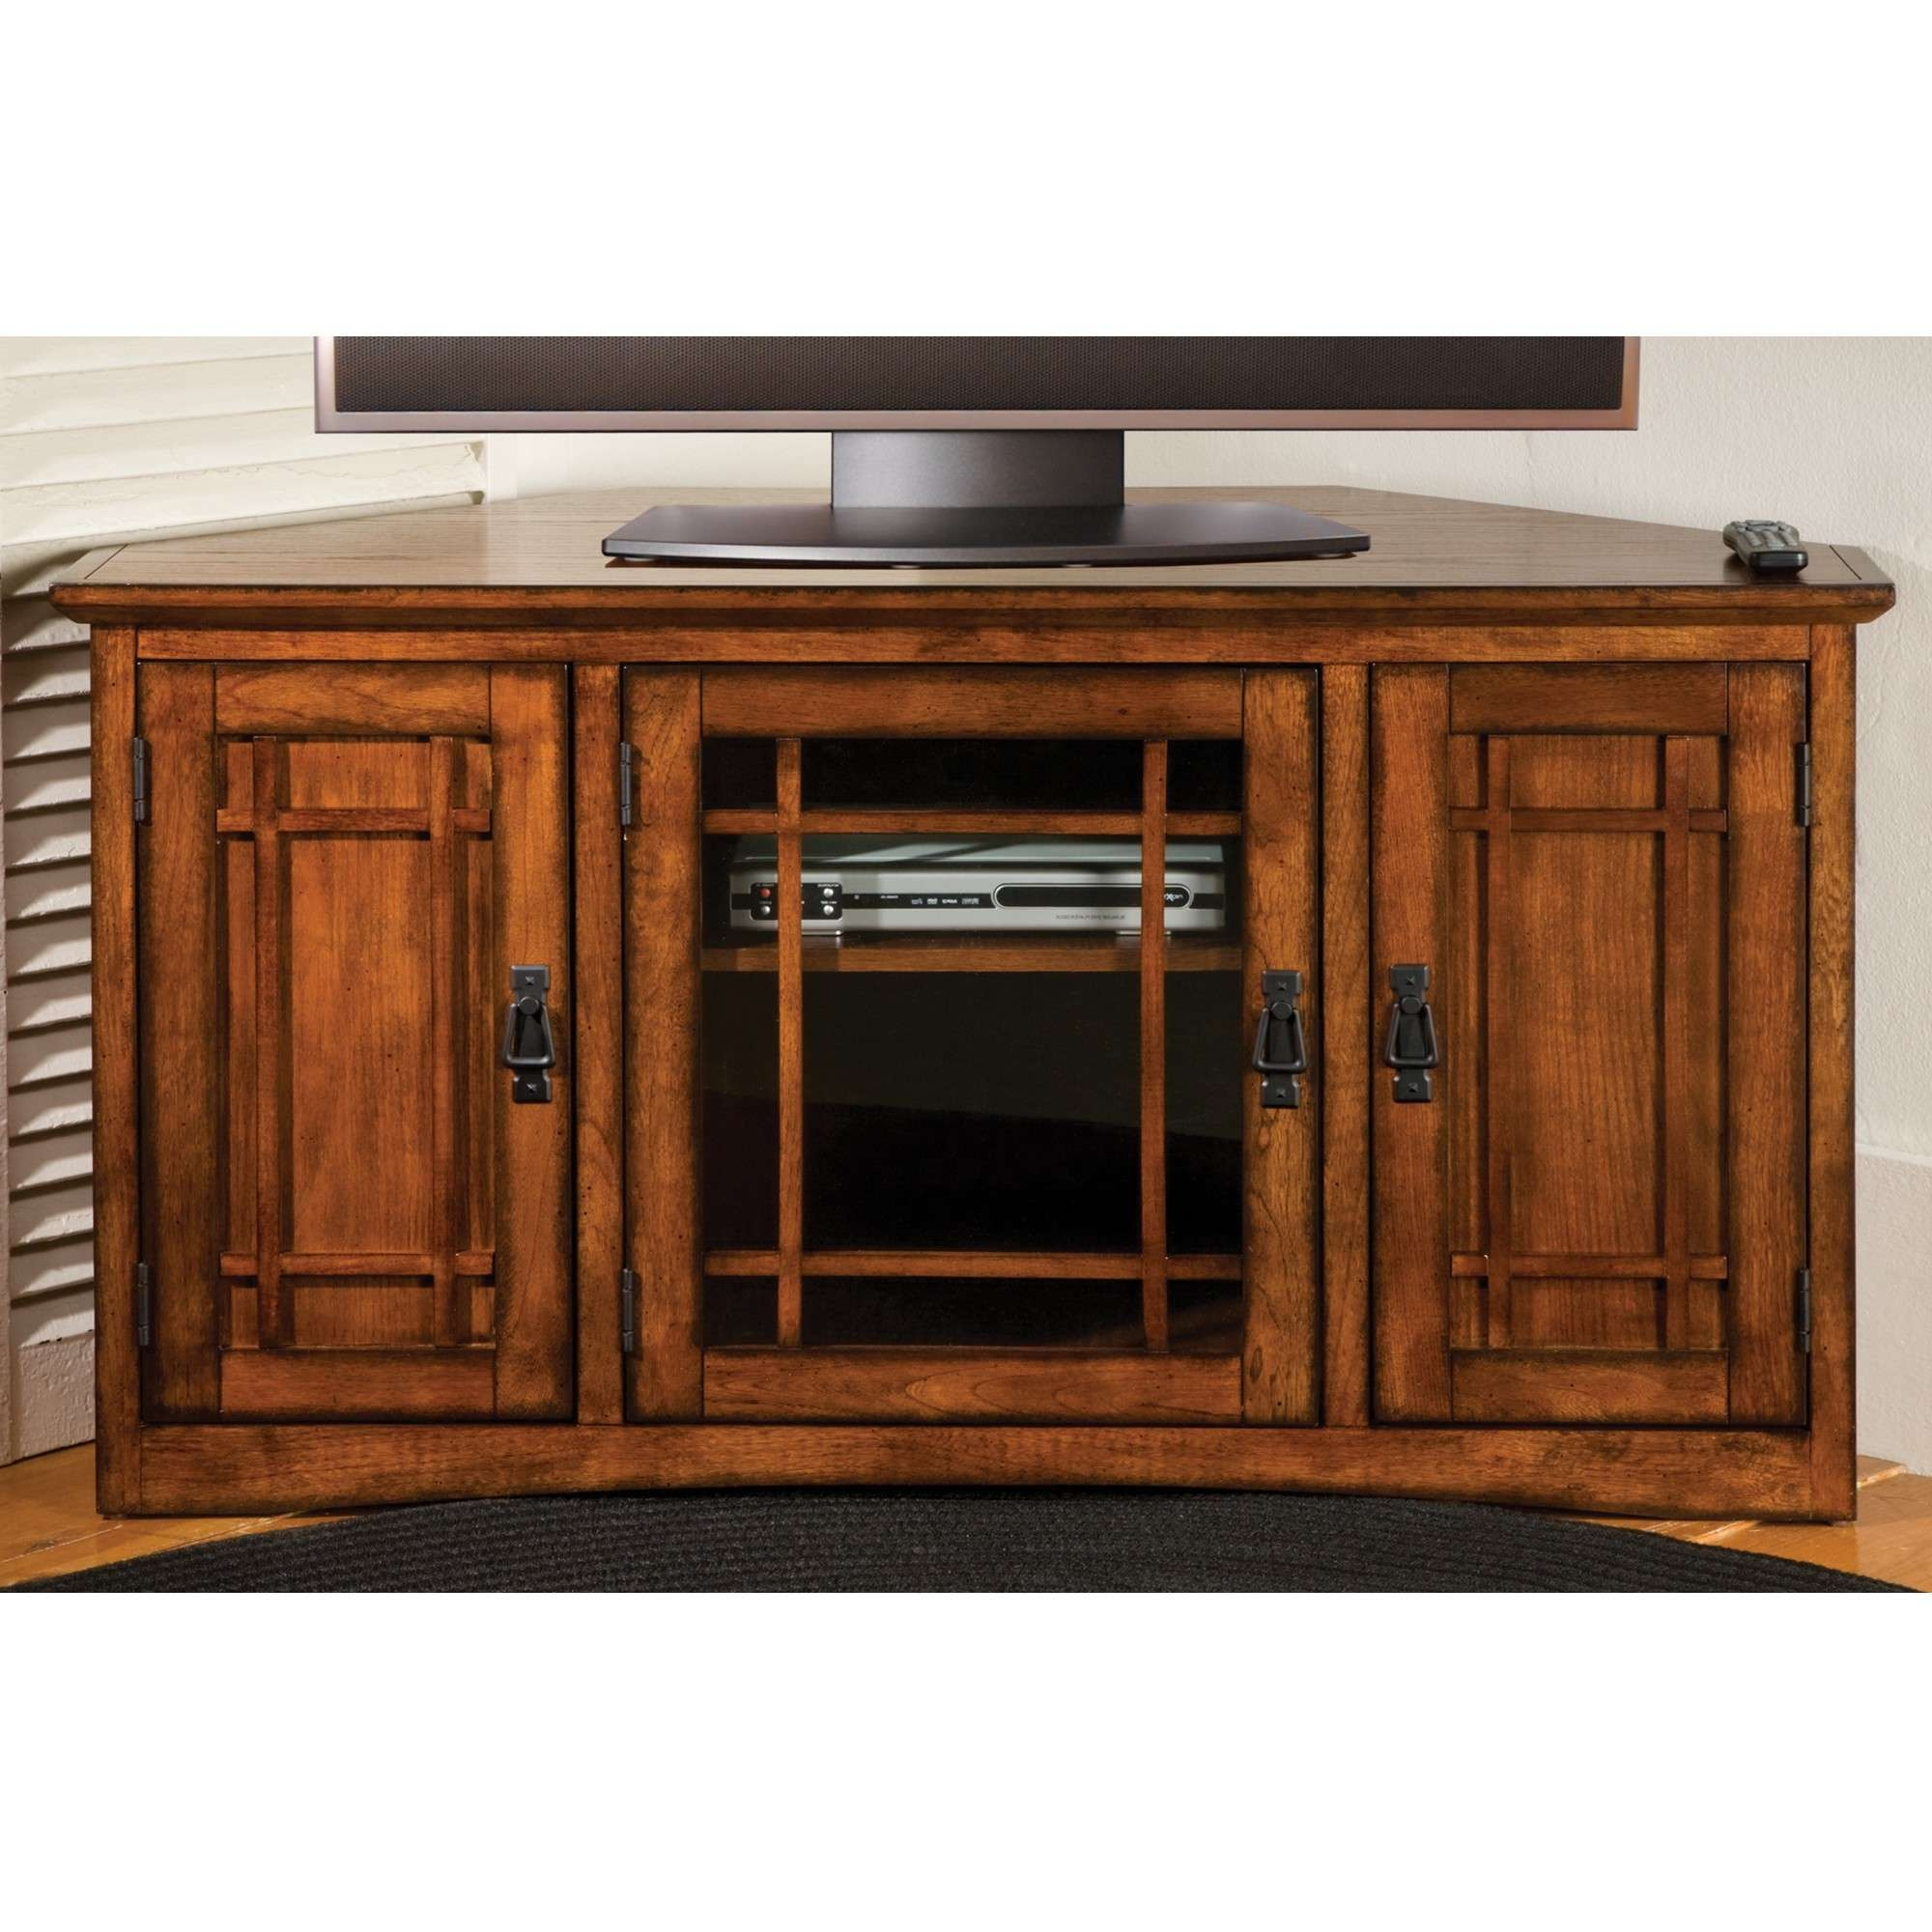 Dark Wood Tv Stand Rustic Standsdark Brown Cherry Stands Small 50 Inside Cherry Wood Tv Cabinets (View 13 of 20)